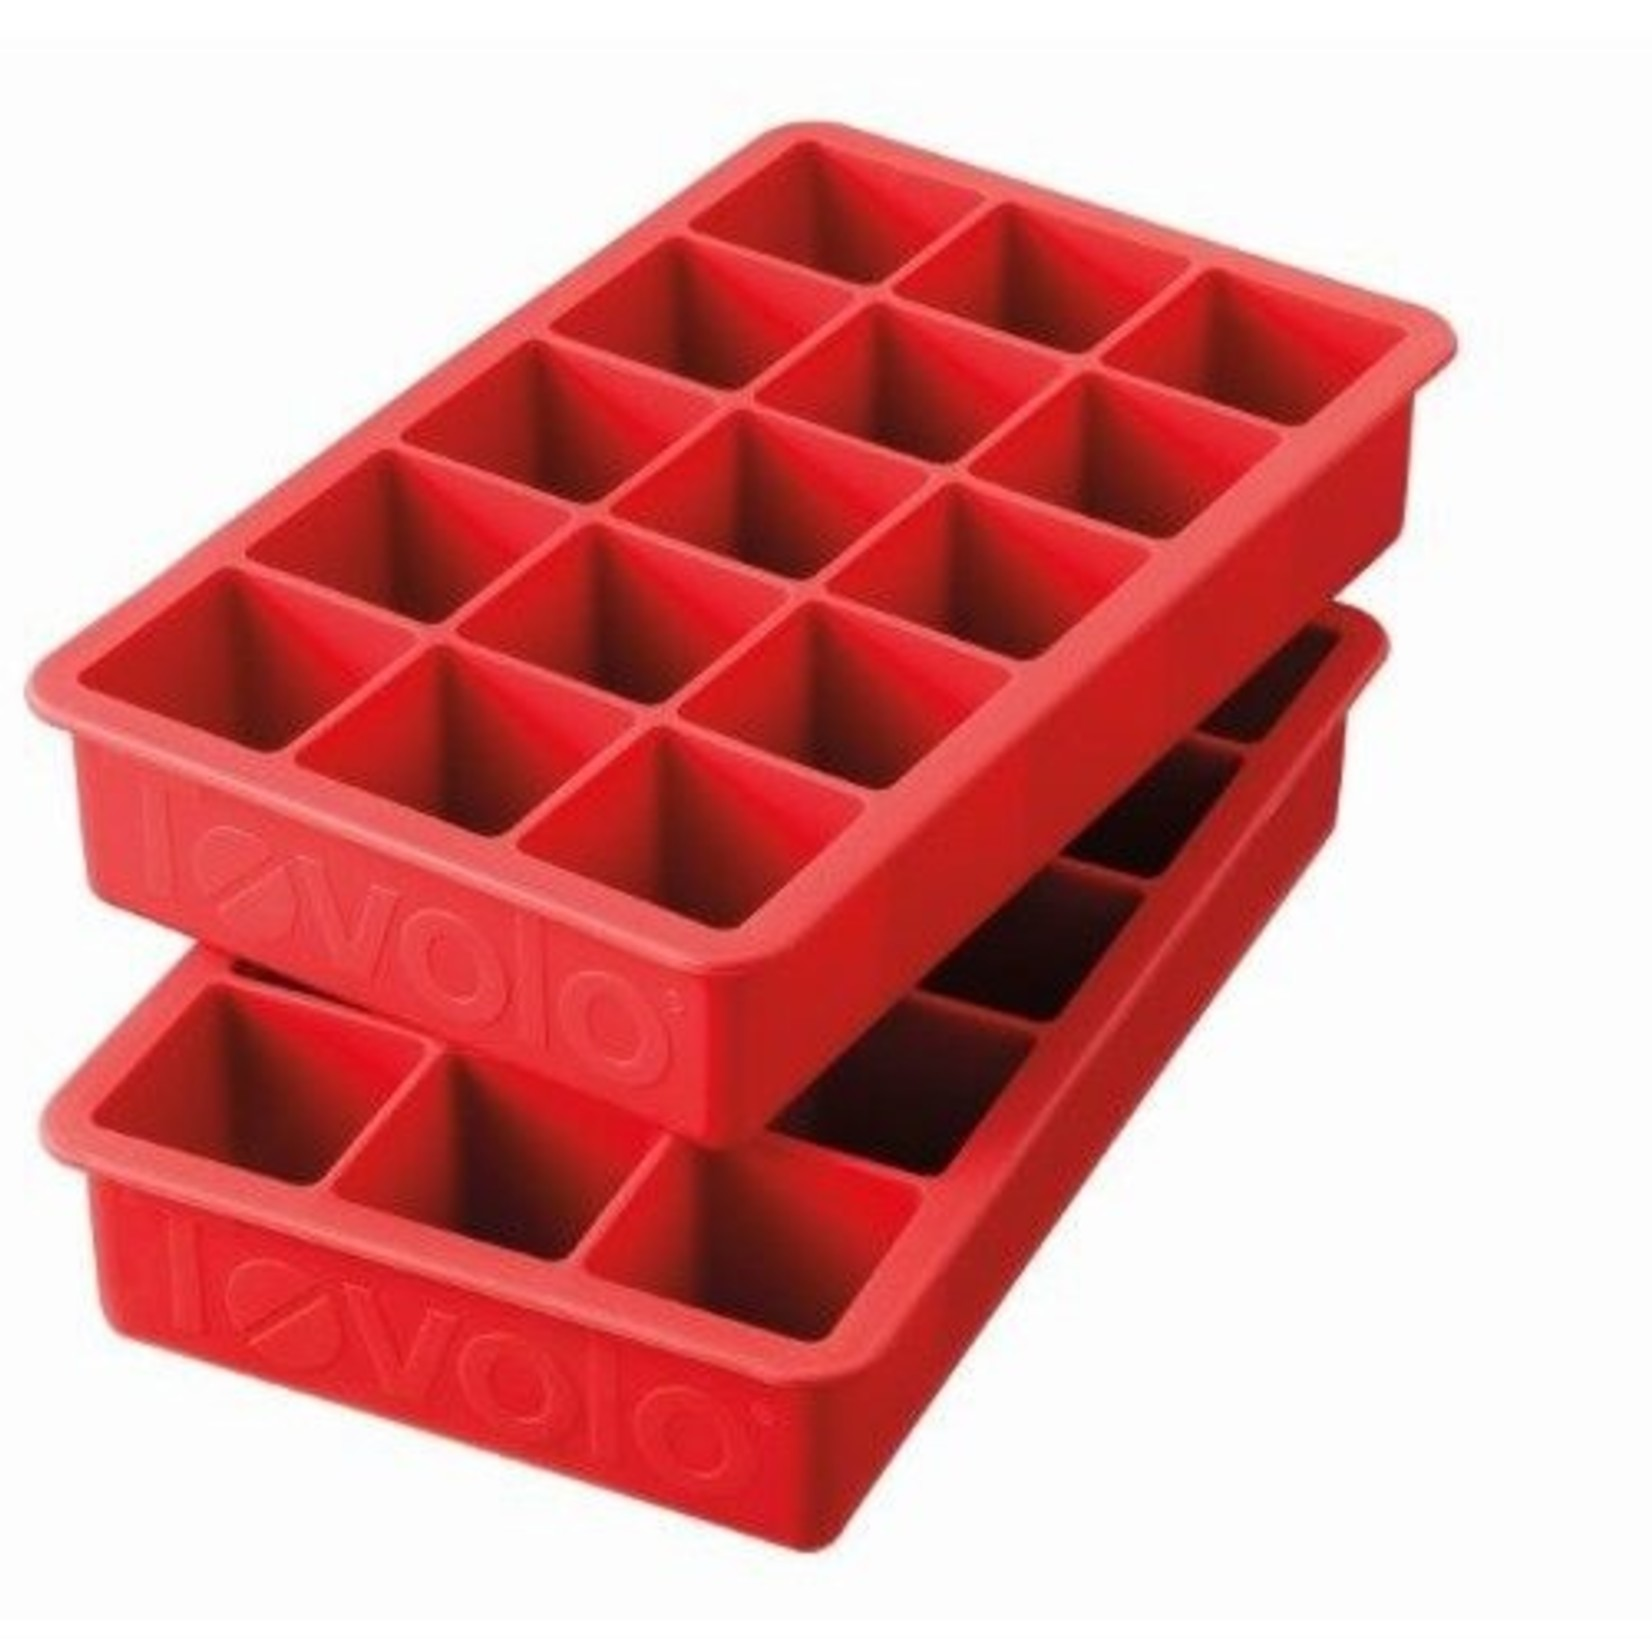 Tovolo Perfect Cube Ice Tray Ruby Red